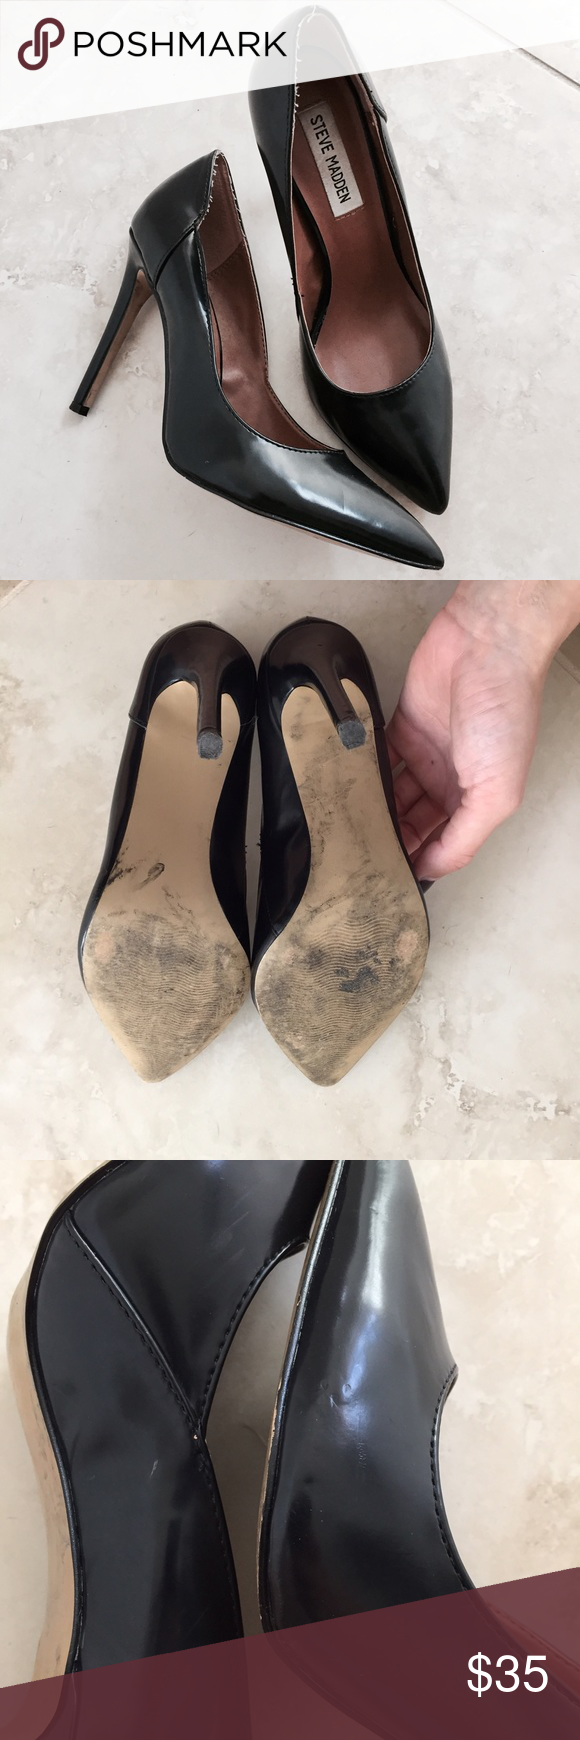 Steve Madden Pumps EUC classic black pointed-toe pumps by Steve Madden. Some scuffs as shown in photo and fraying at the heel (also shown) but excellent condition overall. Steve Madden Shoes Heels